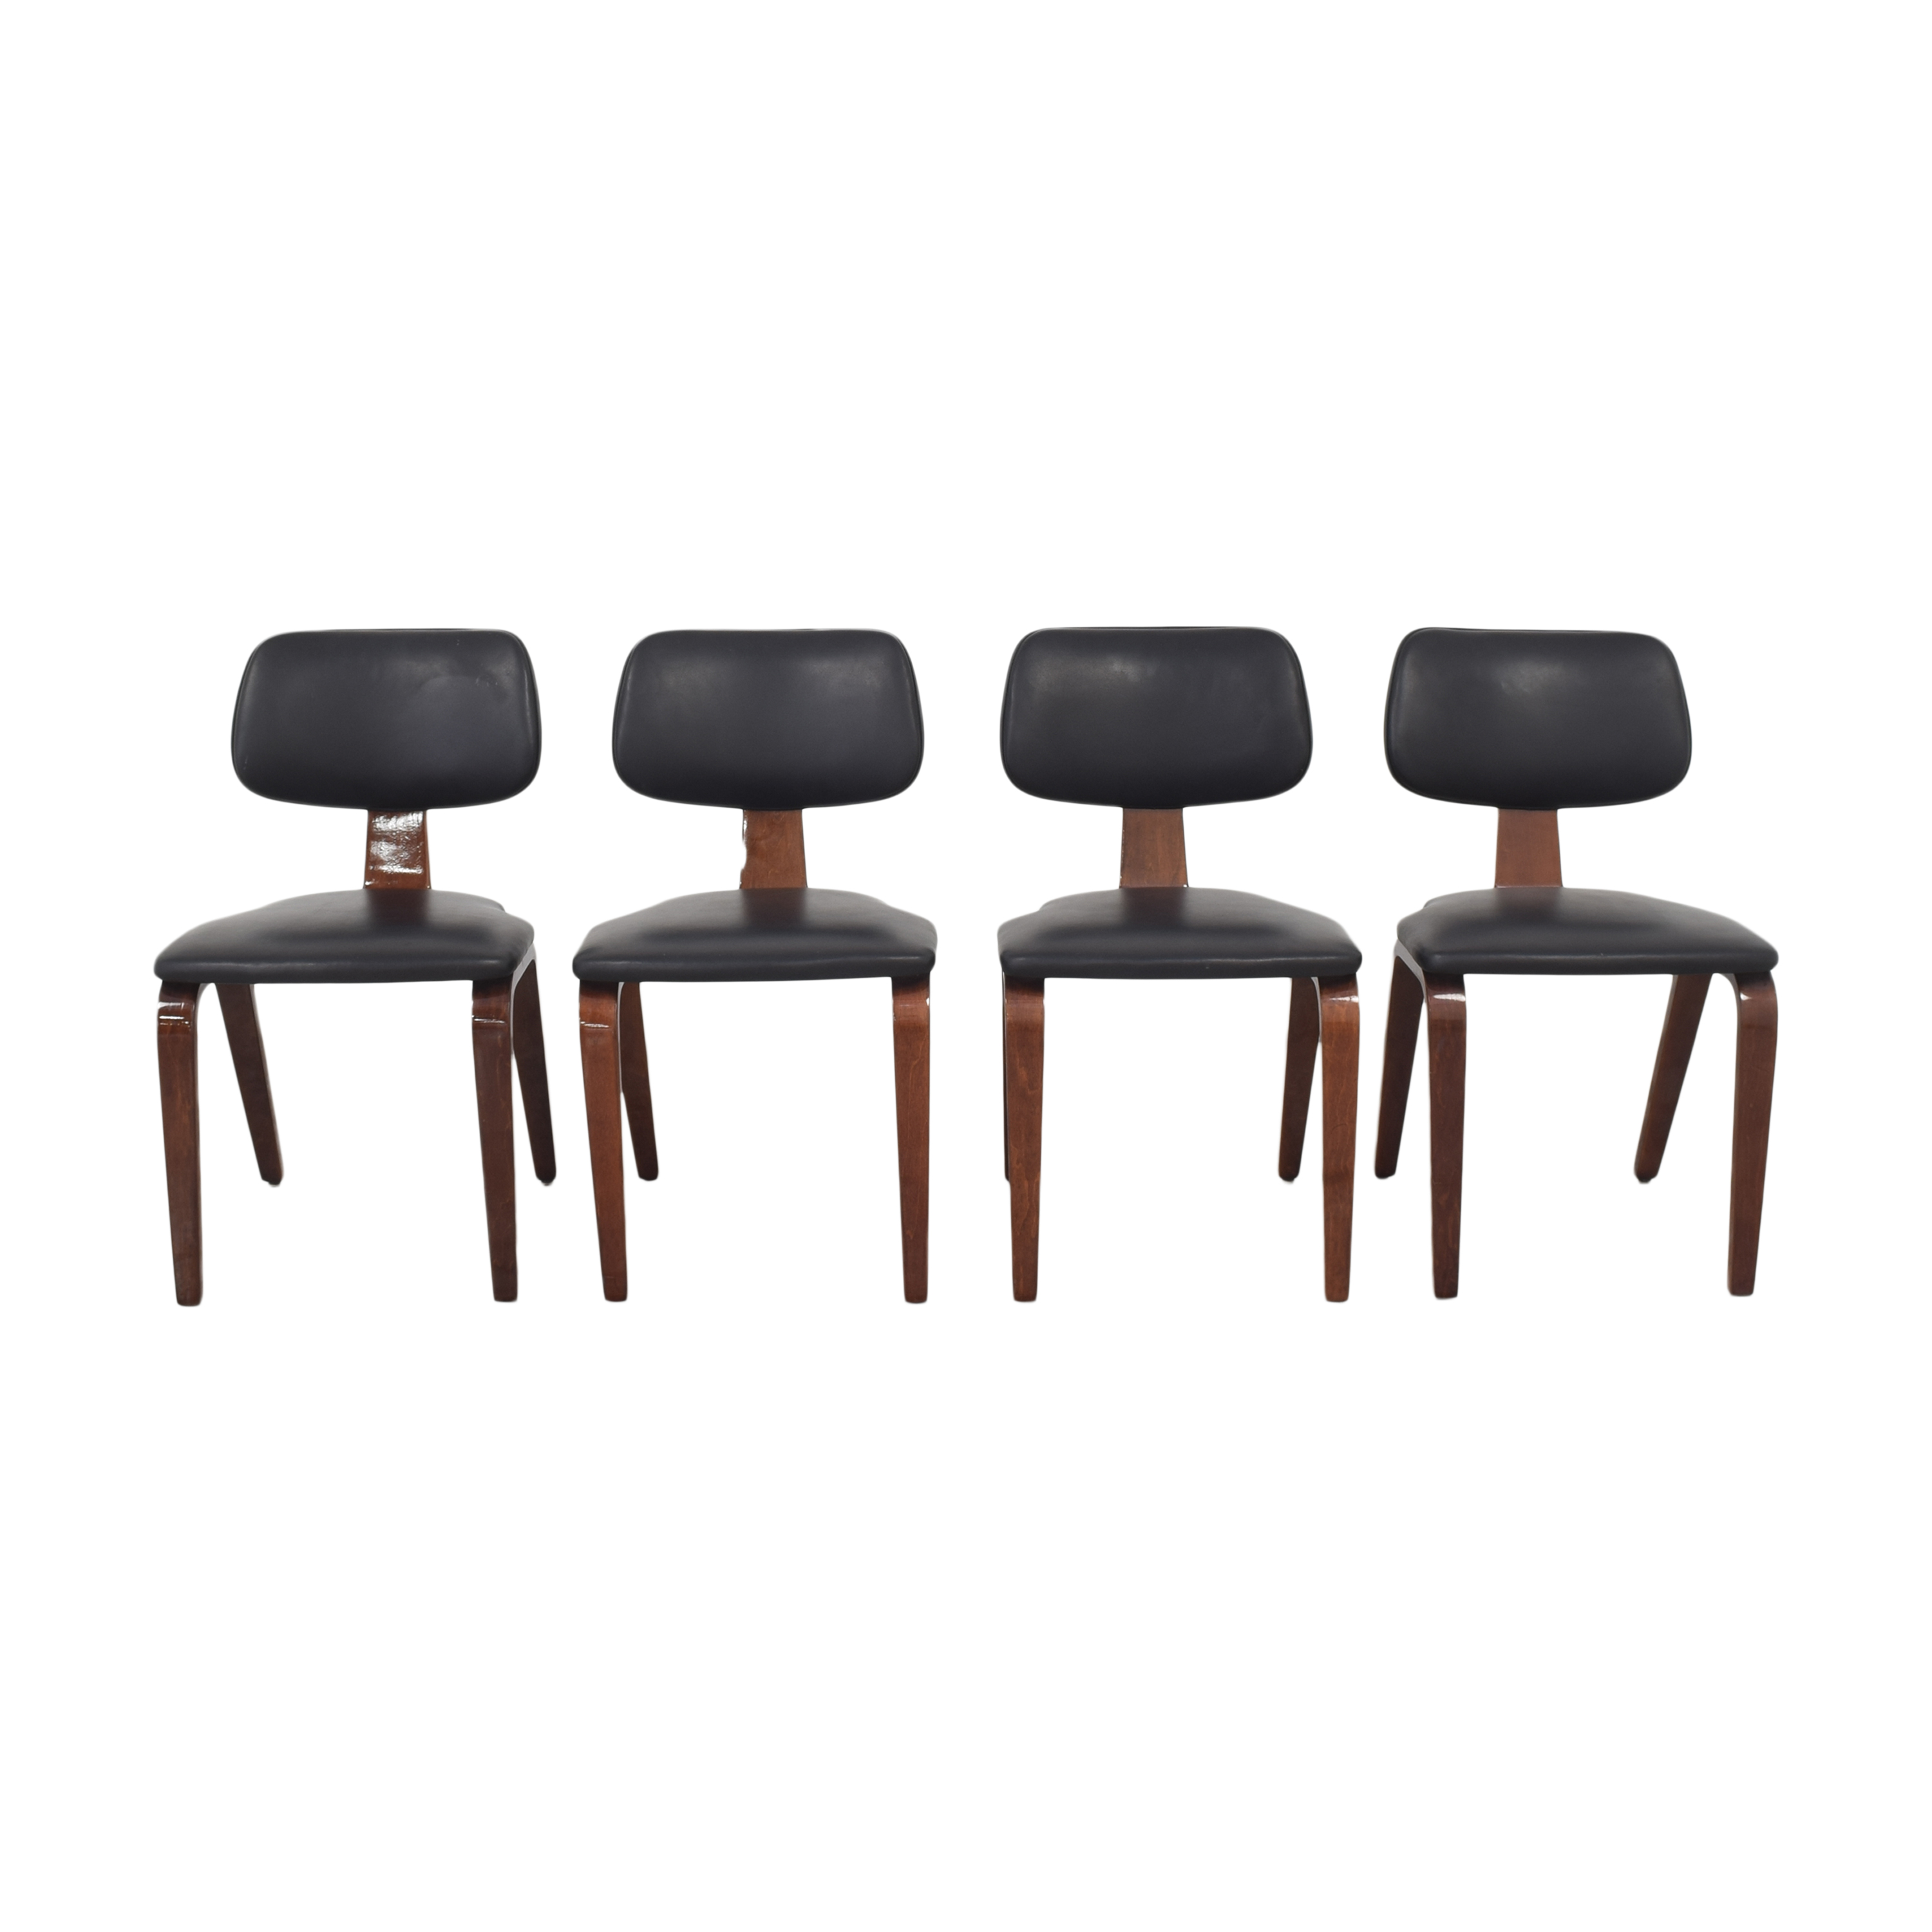 Mid-Century Modern Style Dining Chairs price